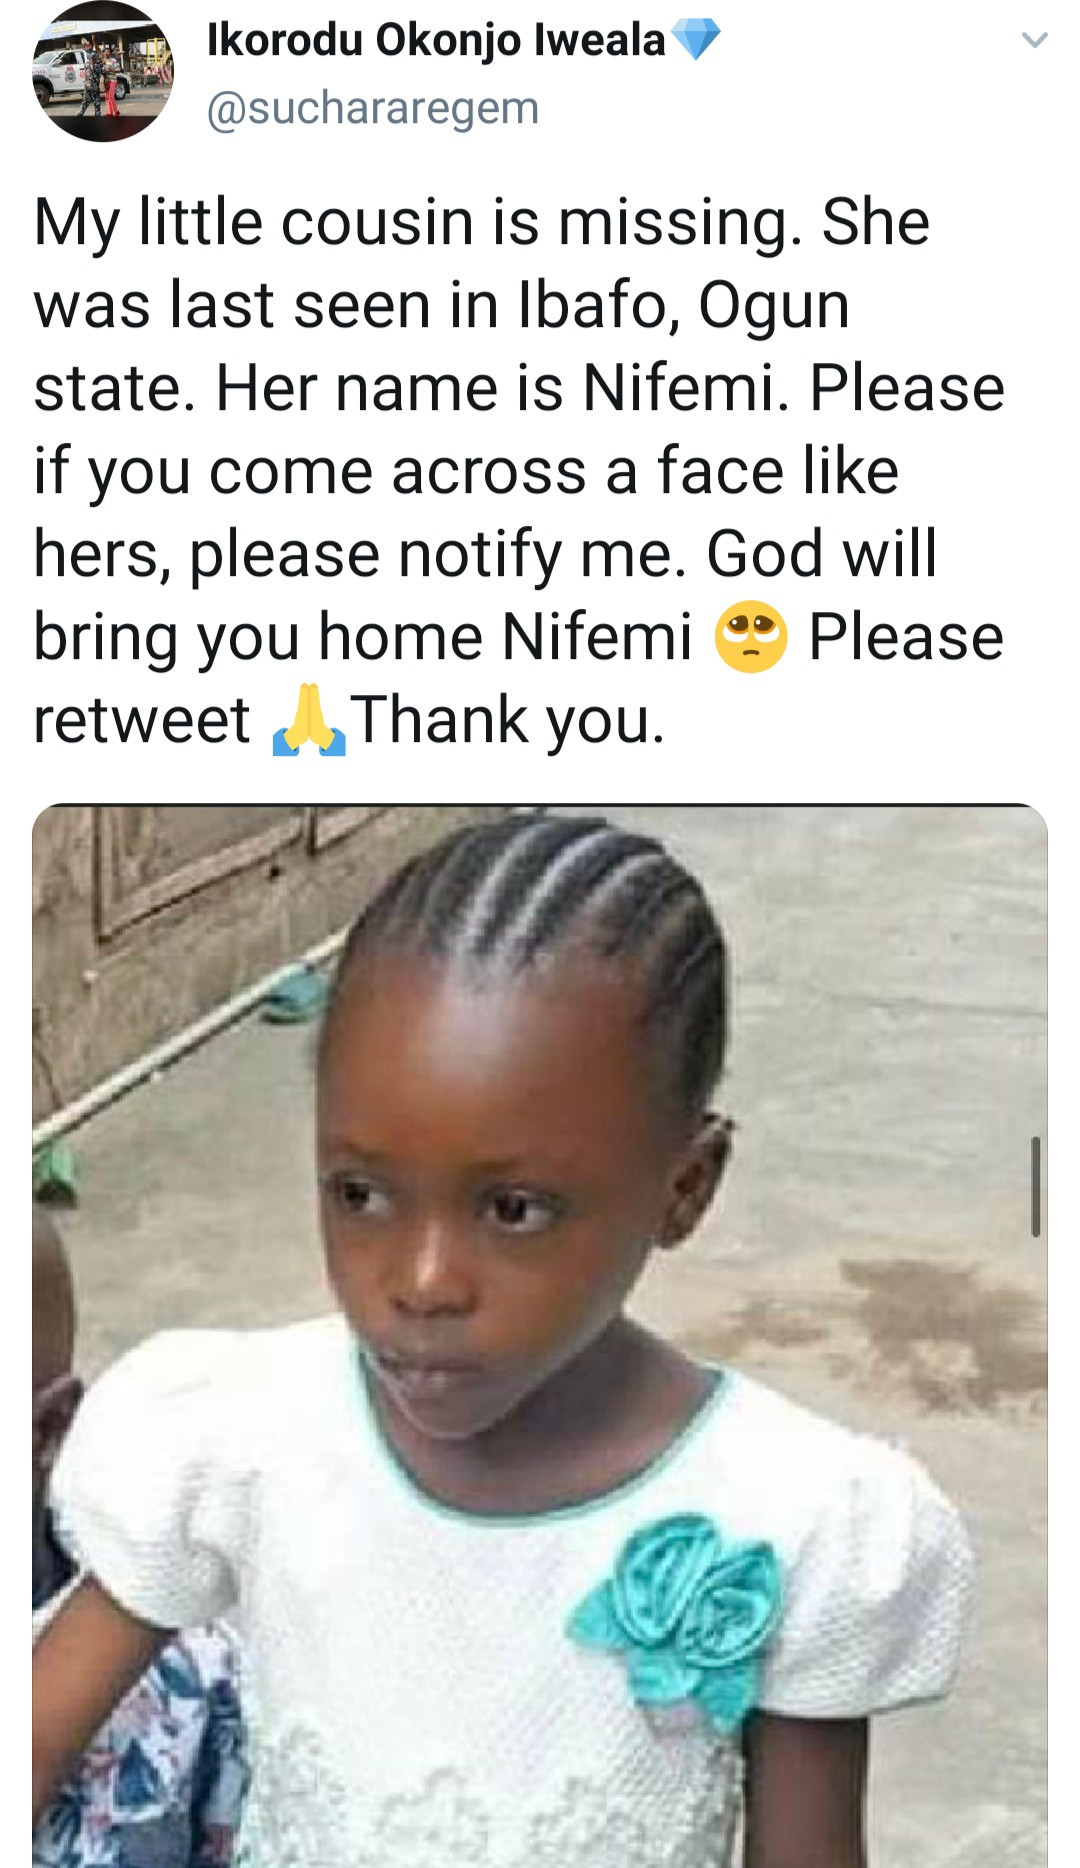 Little Girl Goes Missing After Men Asking For Directions Took Her Away - Vantage News Nigeria